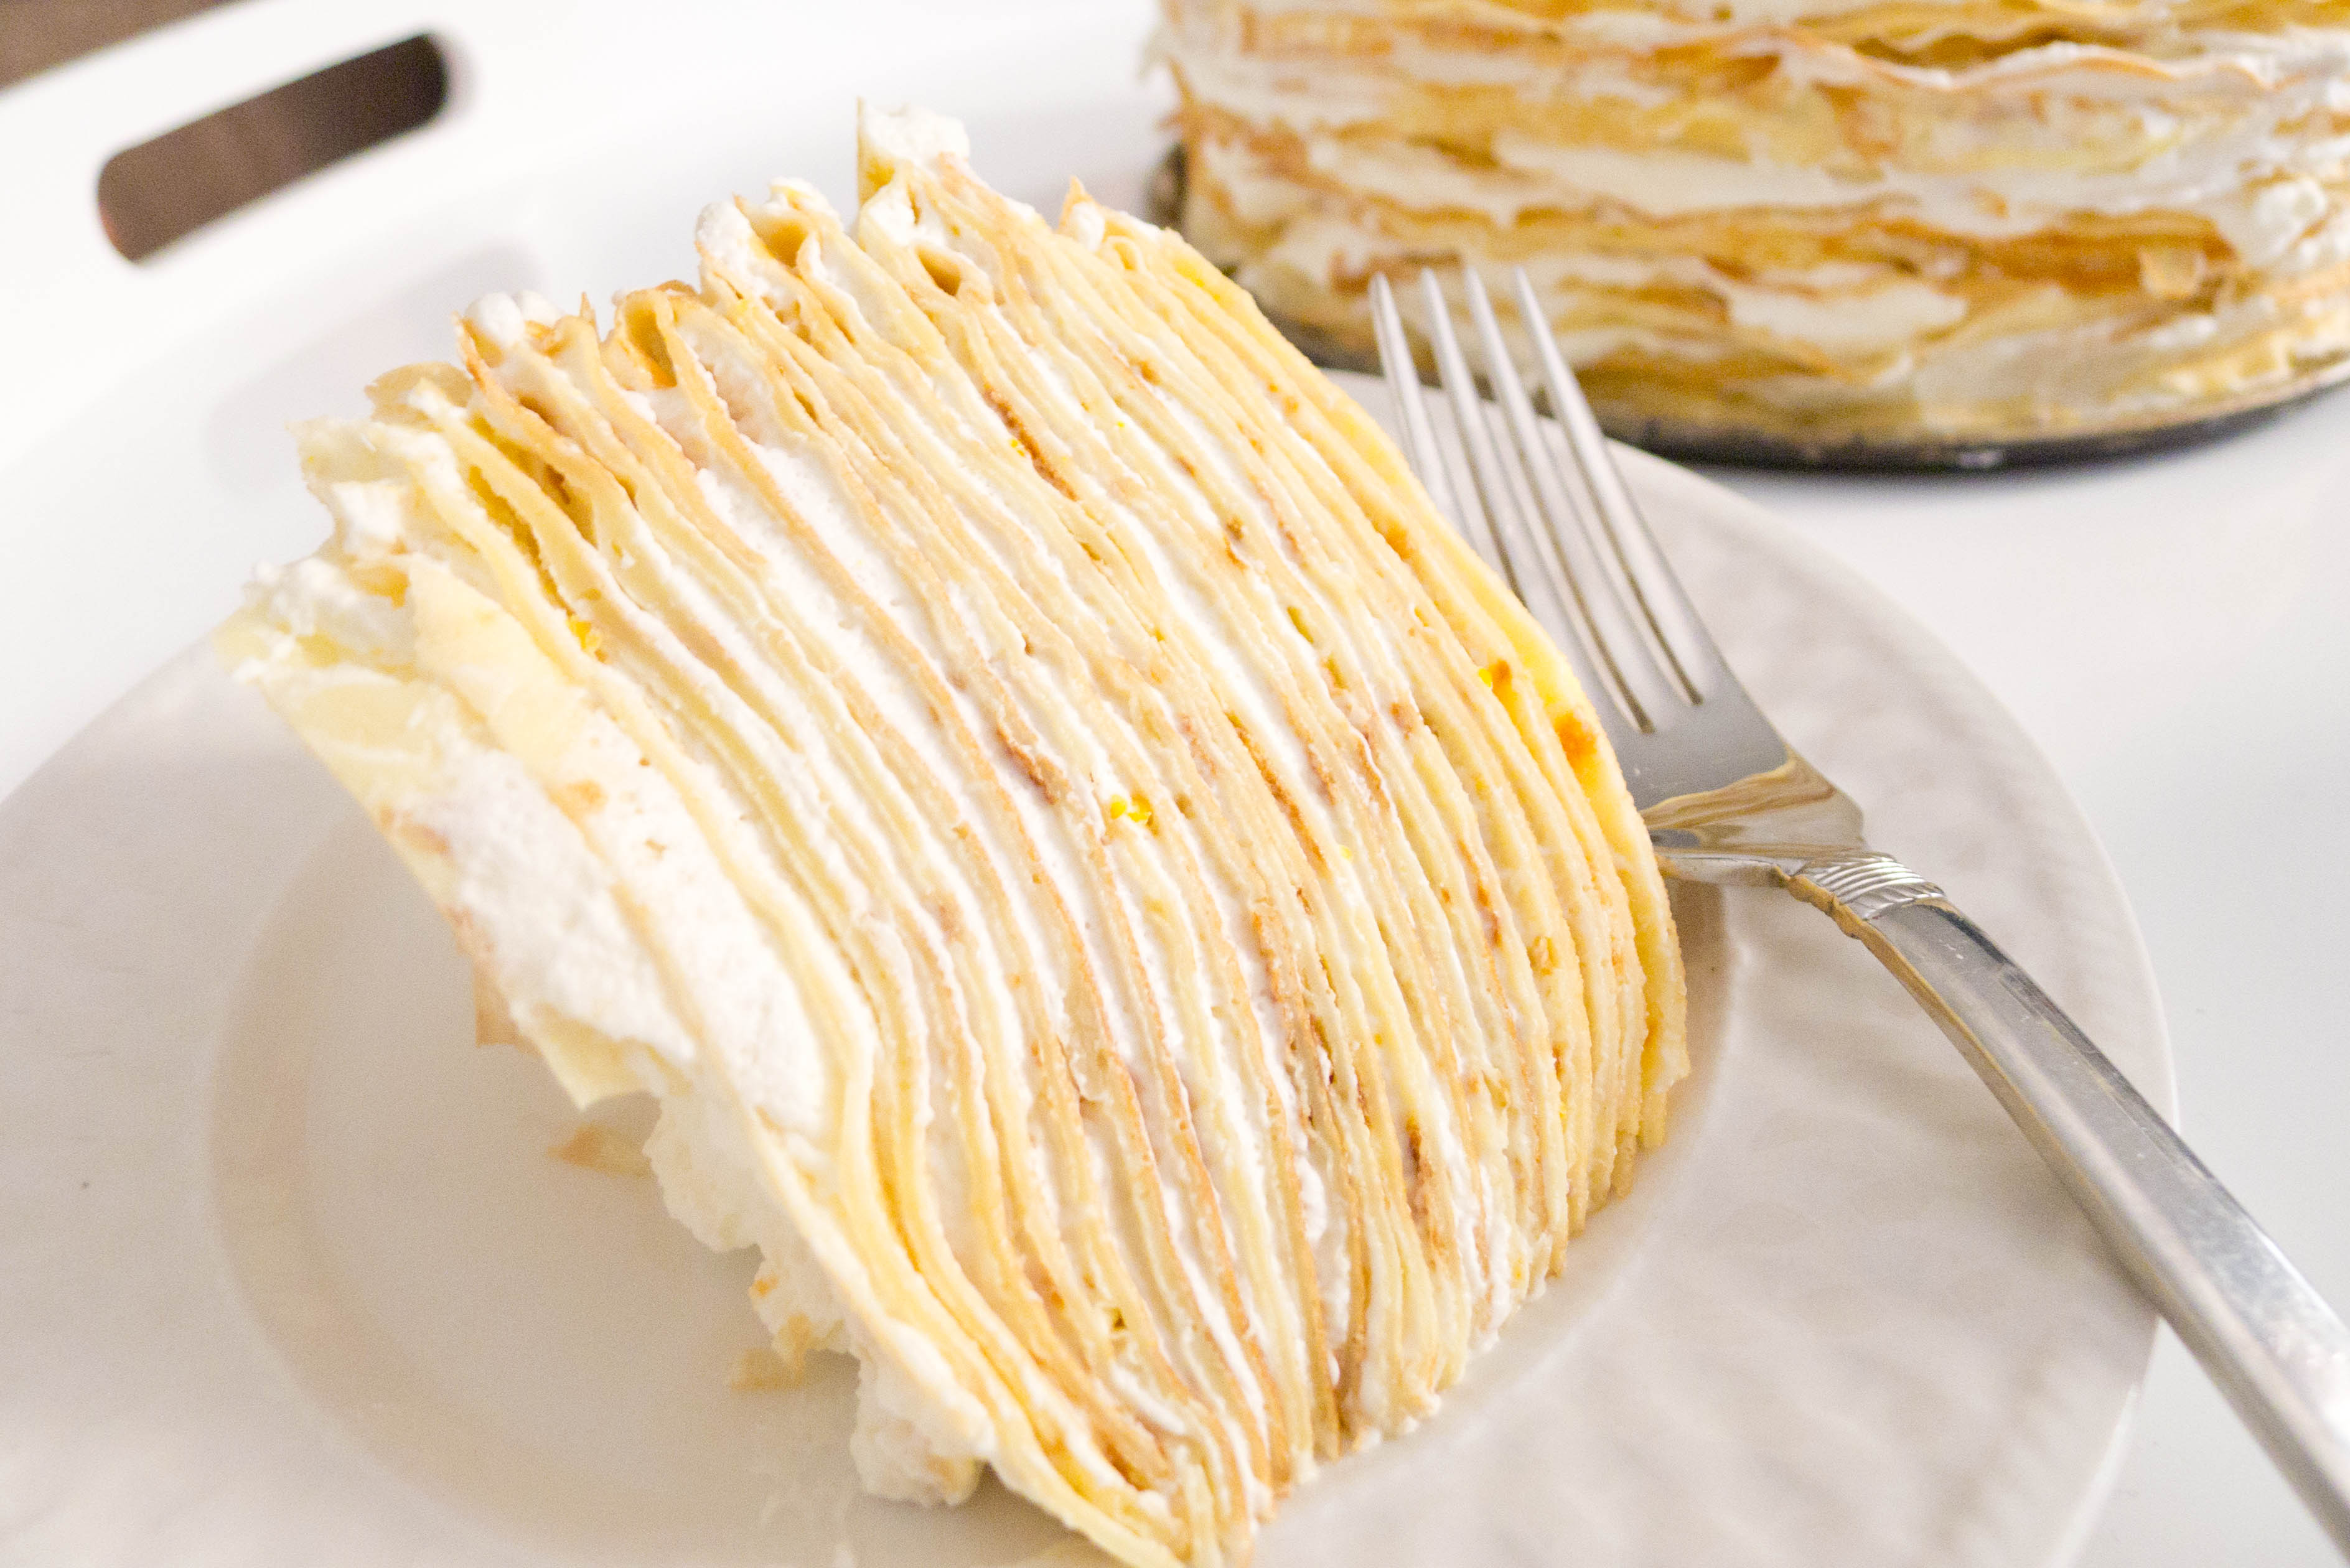 french crêpe cake Thin french crêpes are layered up with vanilla-tainted pastry cream to make an extravagant, elegant cake.